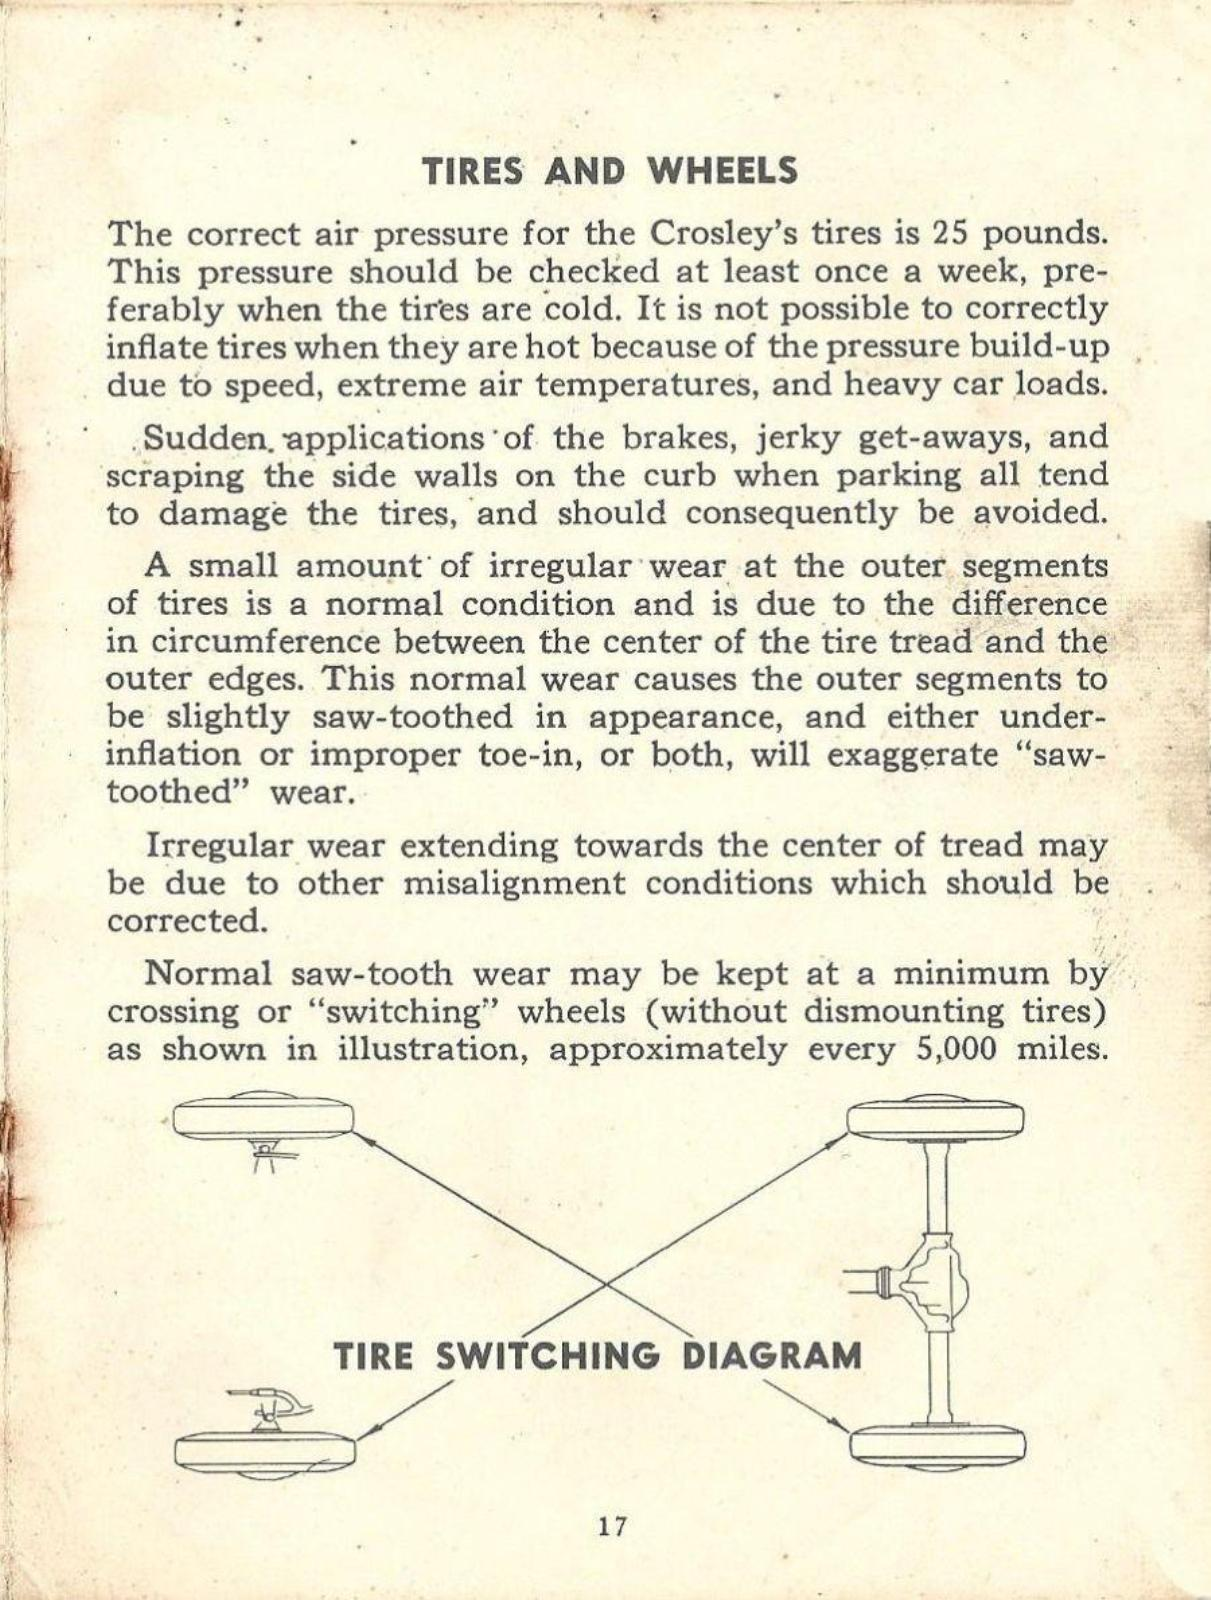 Index Of Cars Manuals Crosley 1947 Owners Manual Files Res Car Wiring Diagram Mobile